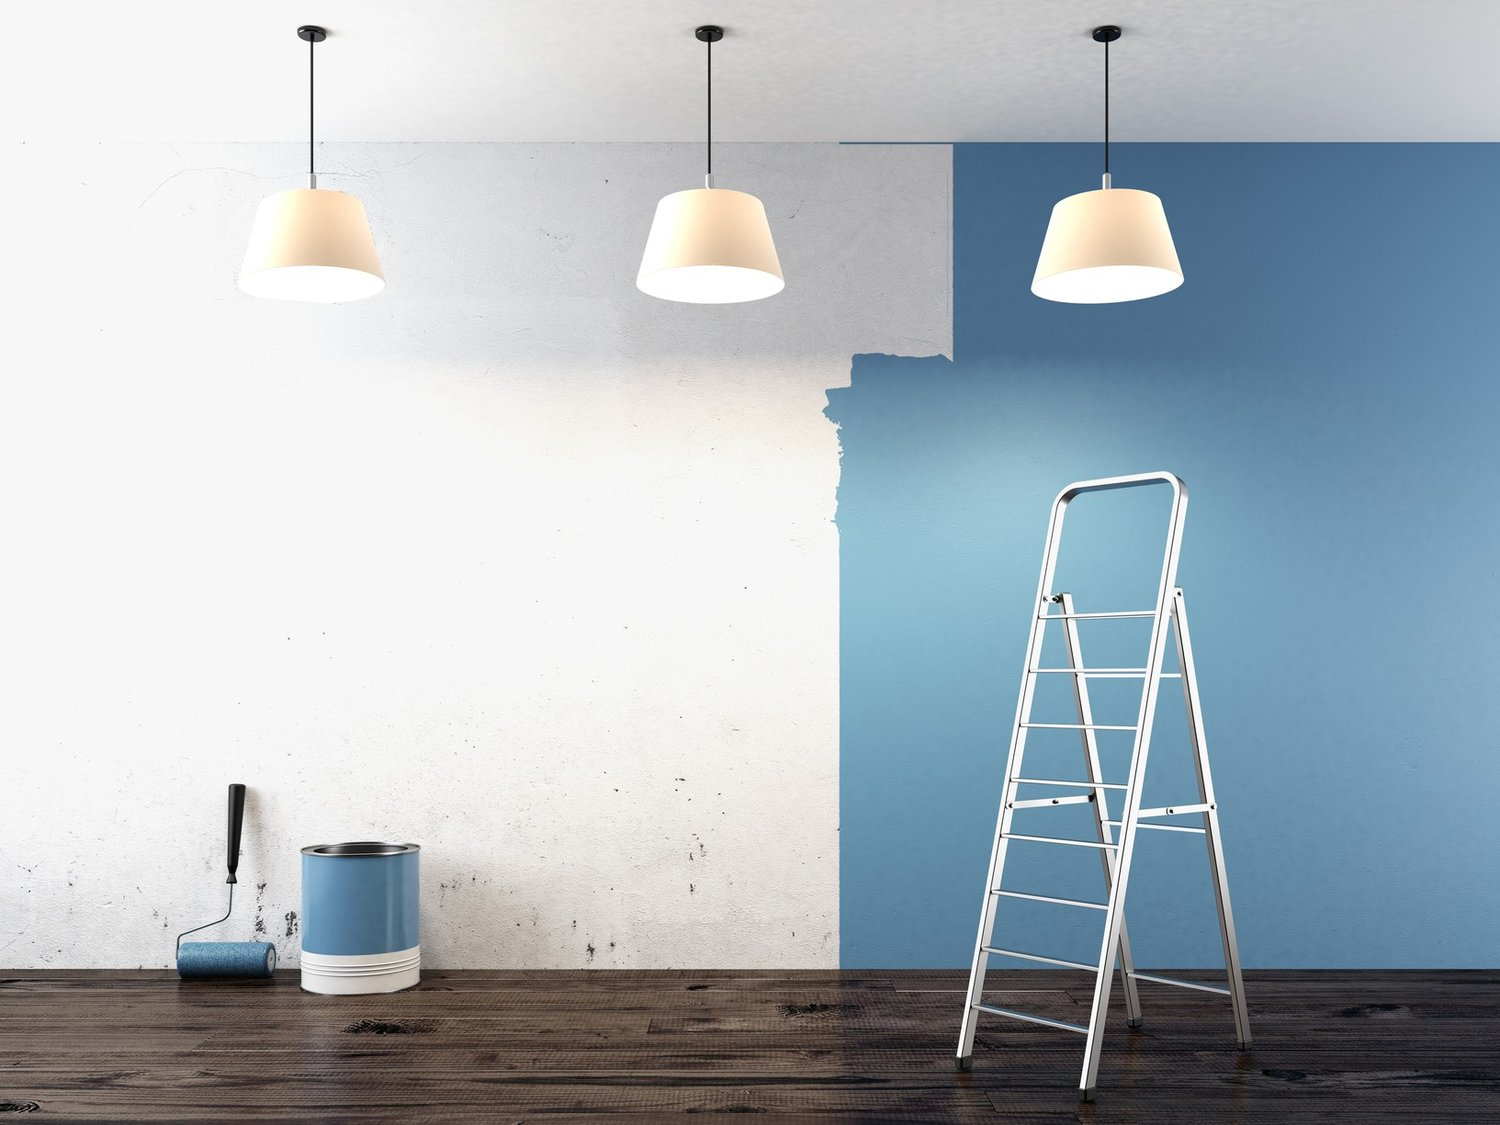 How a Fresh Coat of Paint Can Change a Room